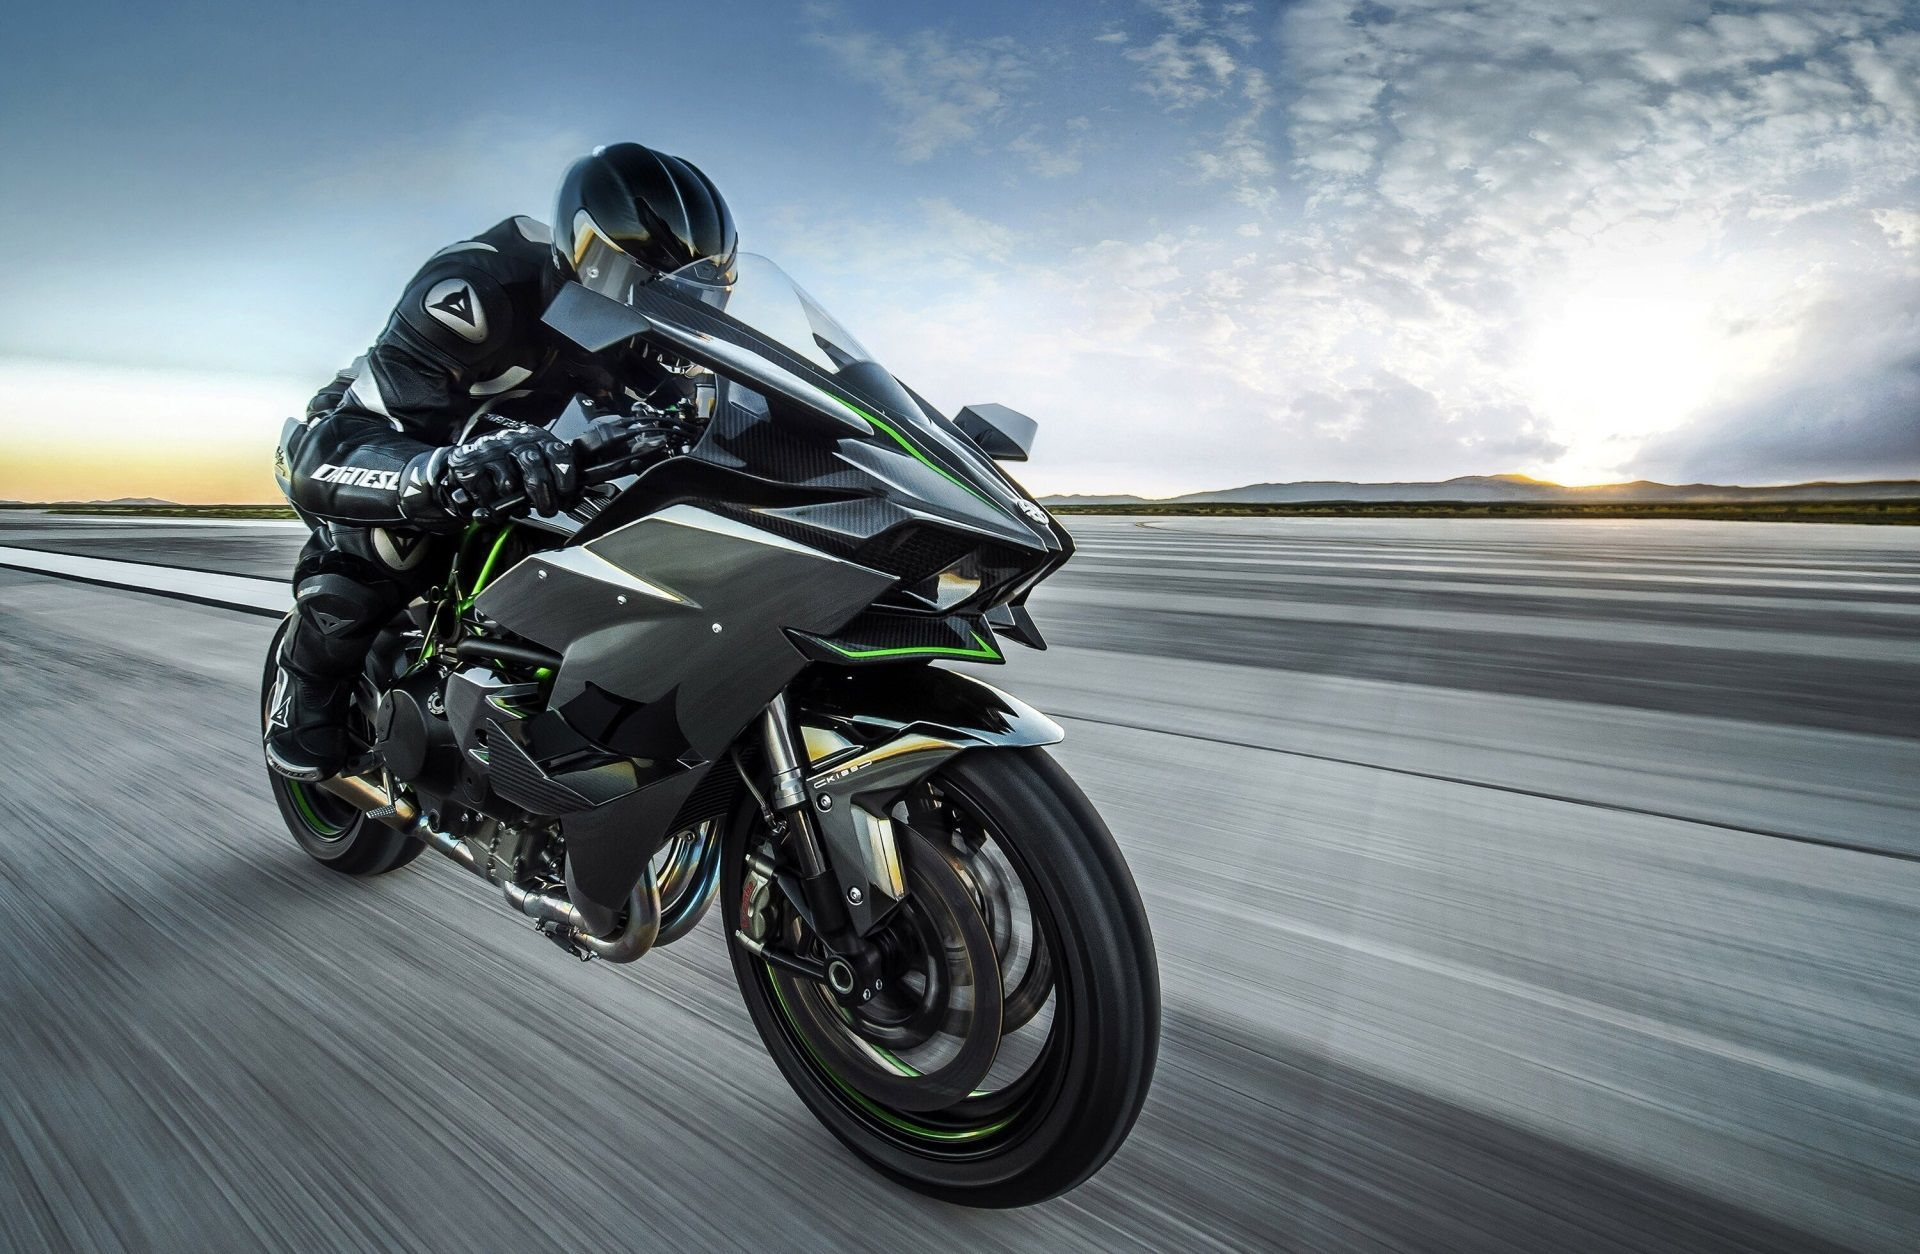 1920x1254 1920x1254 kawasaki ninja h2r wallpaper for desktop background free ...